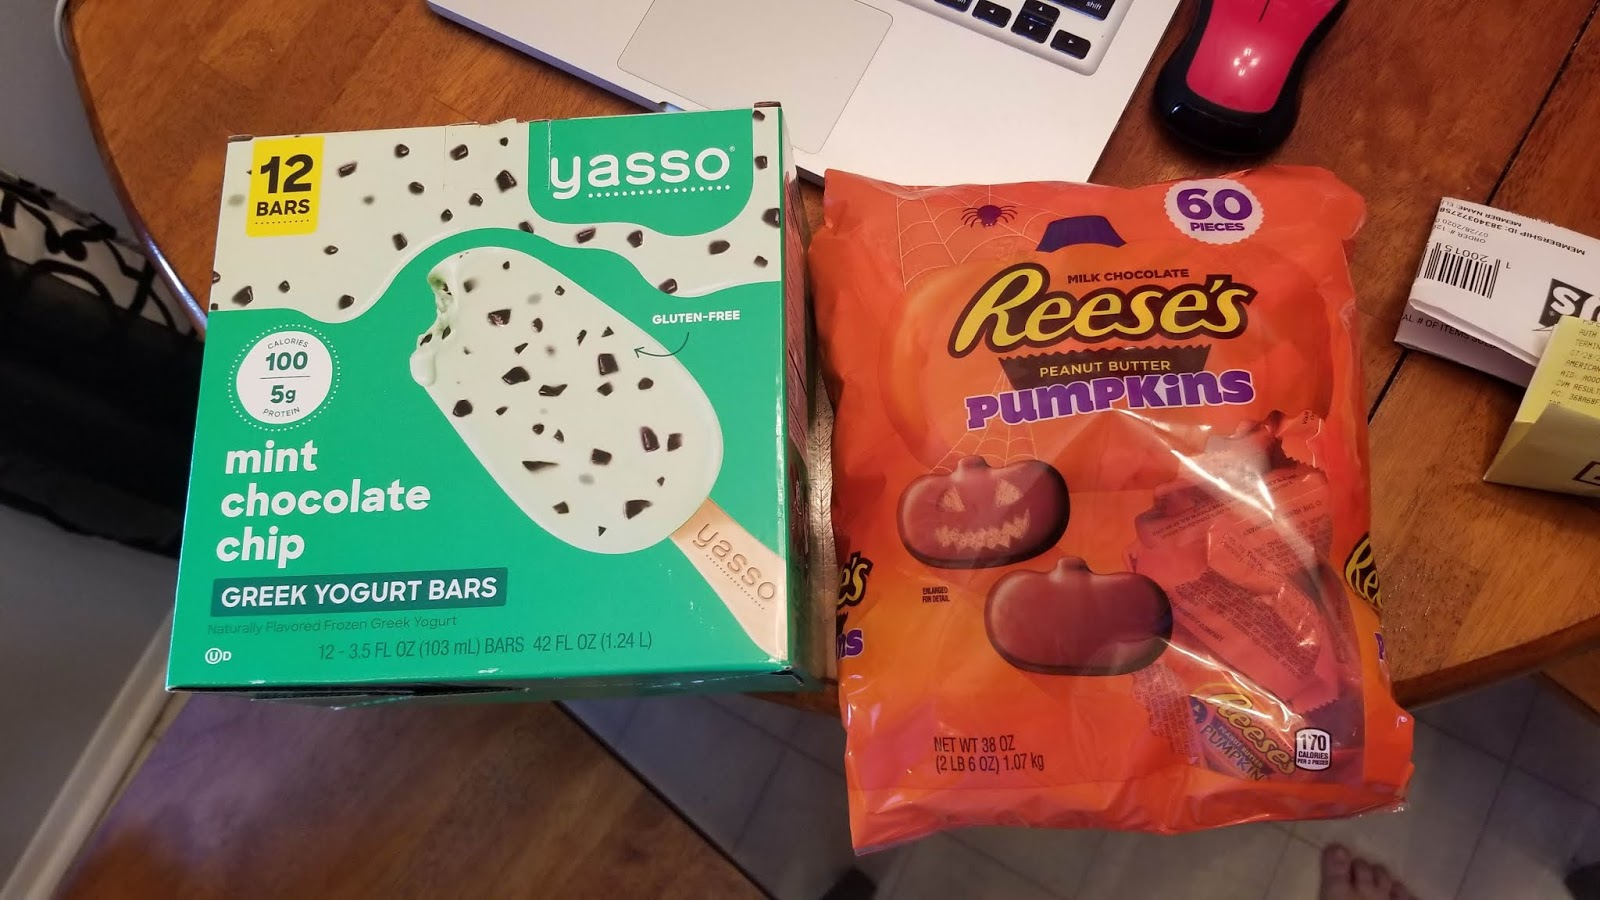 Yasso Greek frozen yogurt bars and Reese's pumpkins from BJ's, yum!